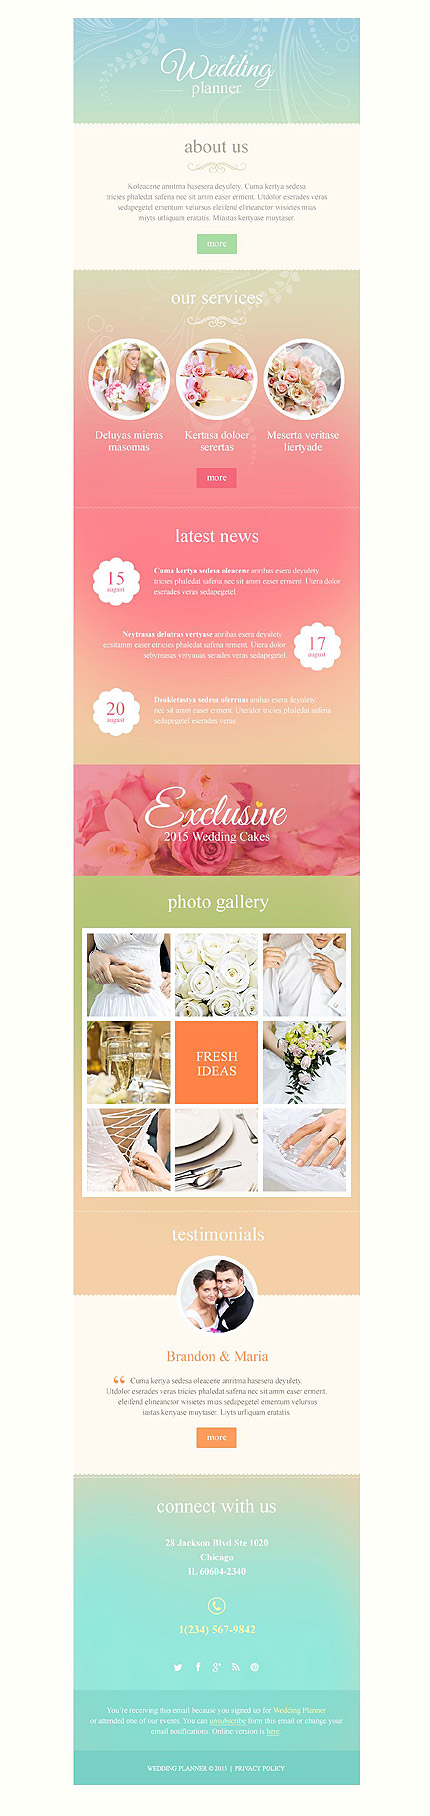 Template 53089 - Wedding Planner Responsive Newsletter Template - MailChimp Ready, Campaign Monitor Ready